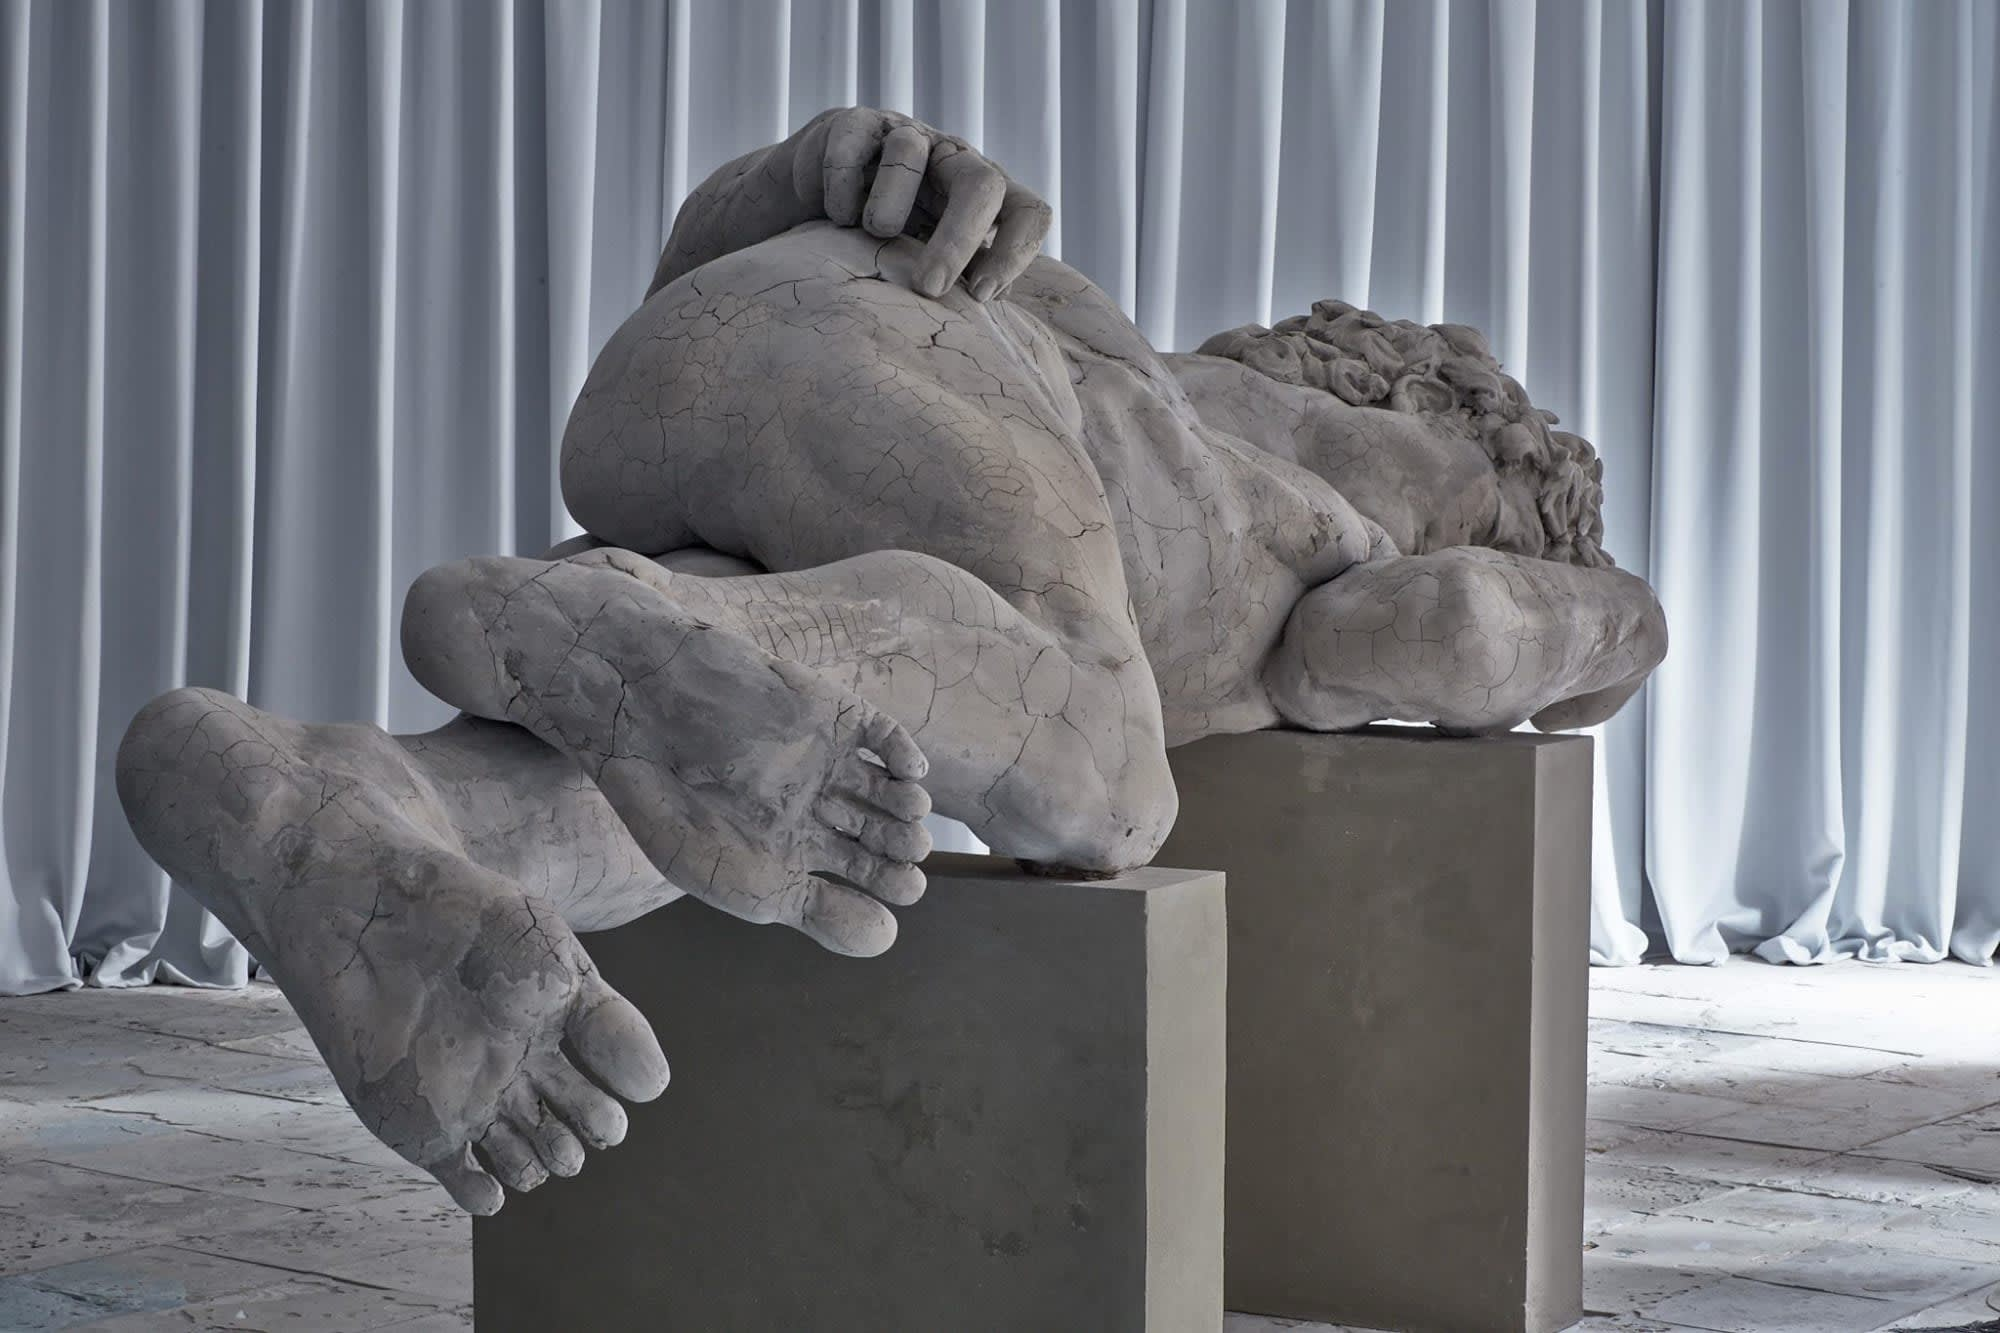 Gallery view of figurative marble sculpture sleeping on two uneven cement pillars. The figure is cracked.